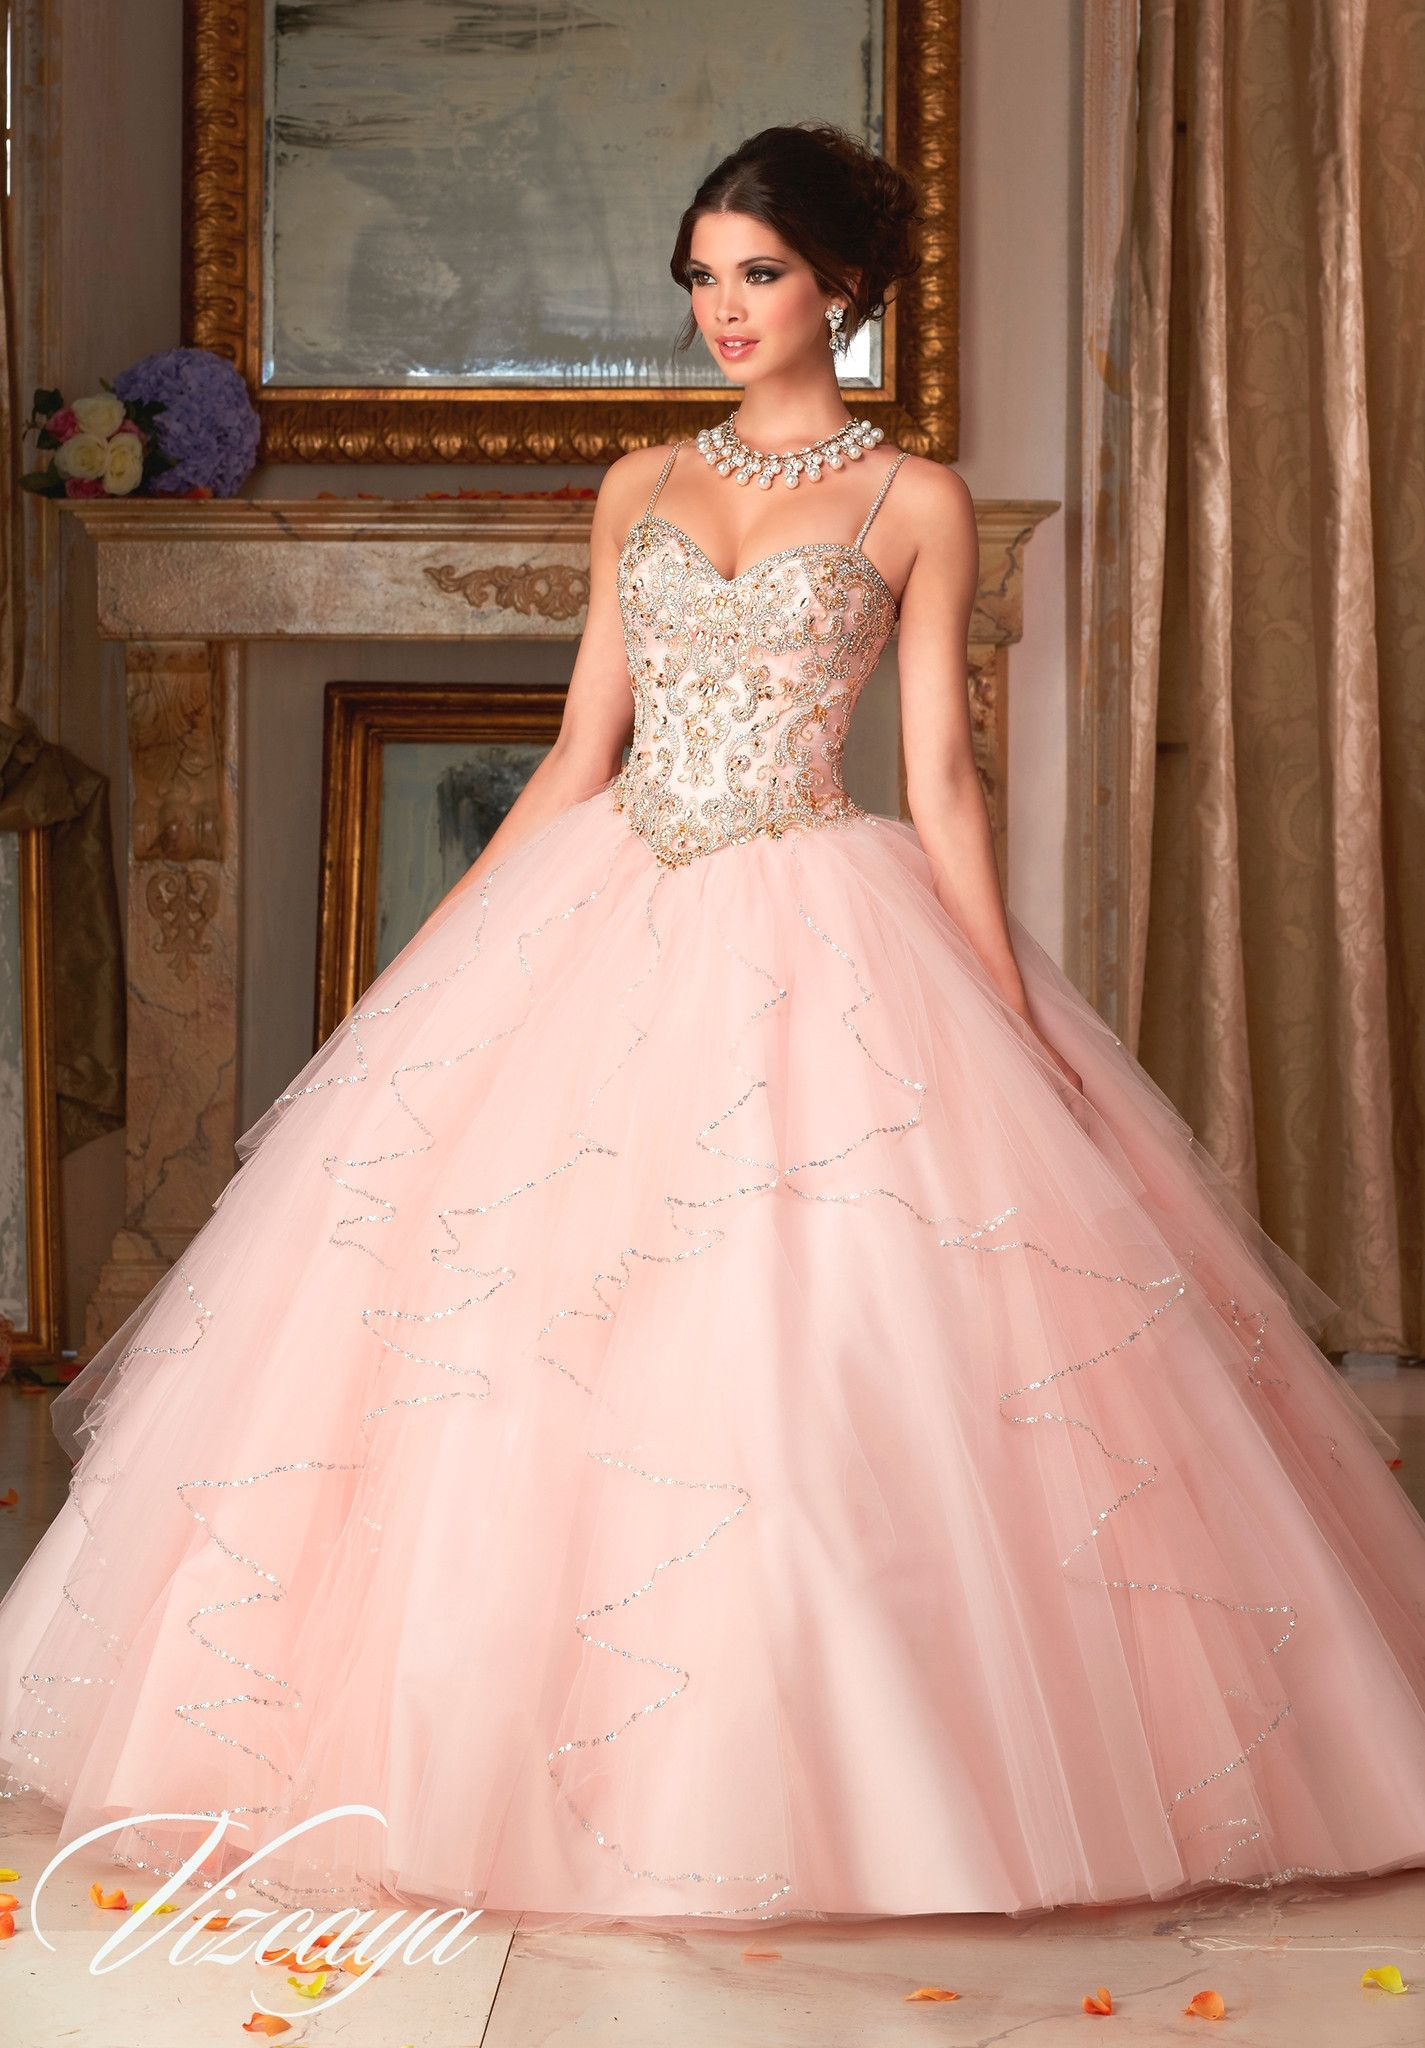 Mori Lee Quinceanera Dress 89101 | Vestidos de novia de tul ...